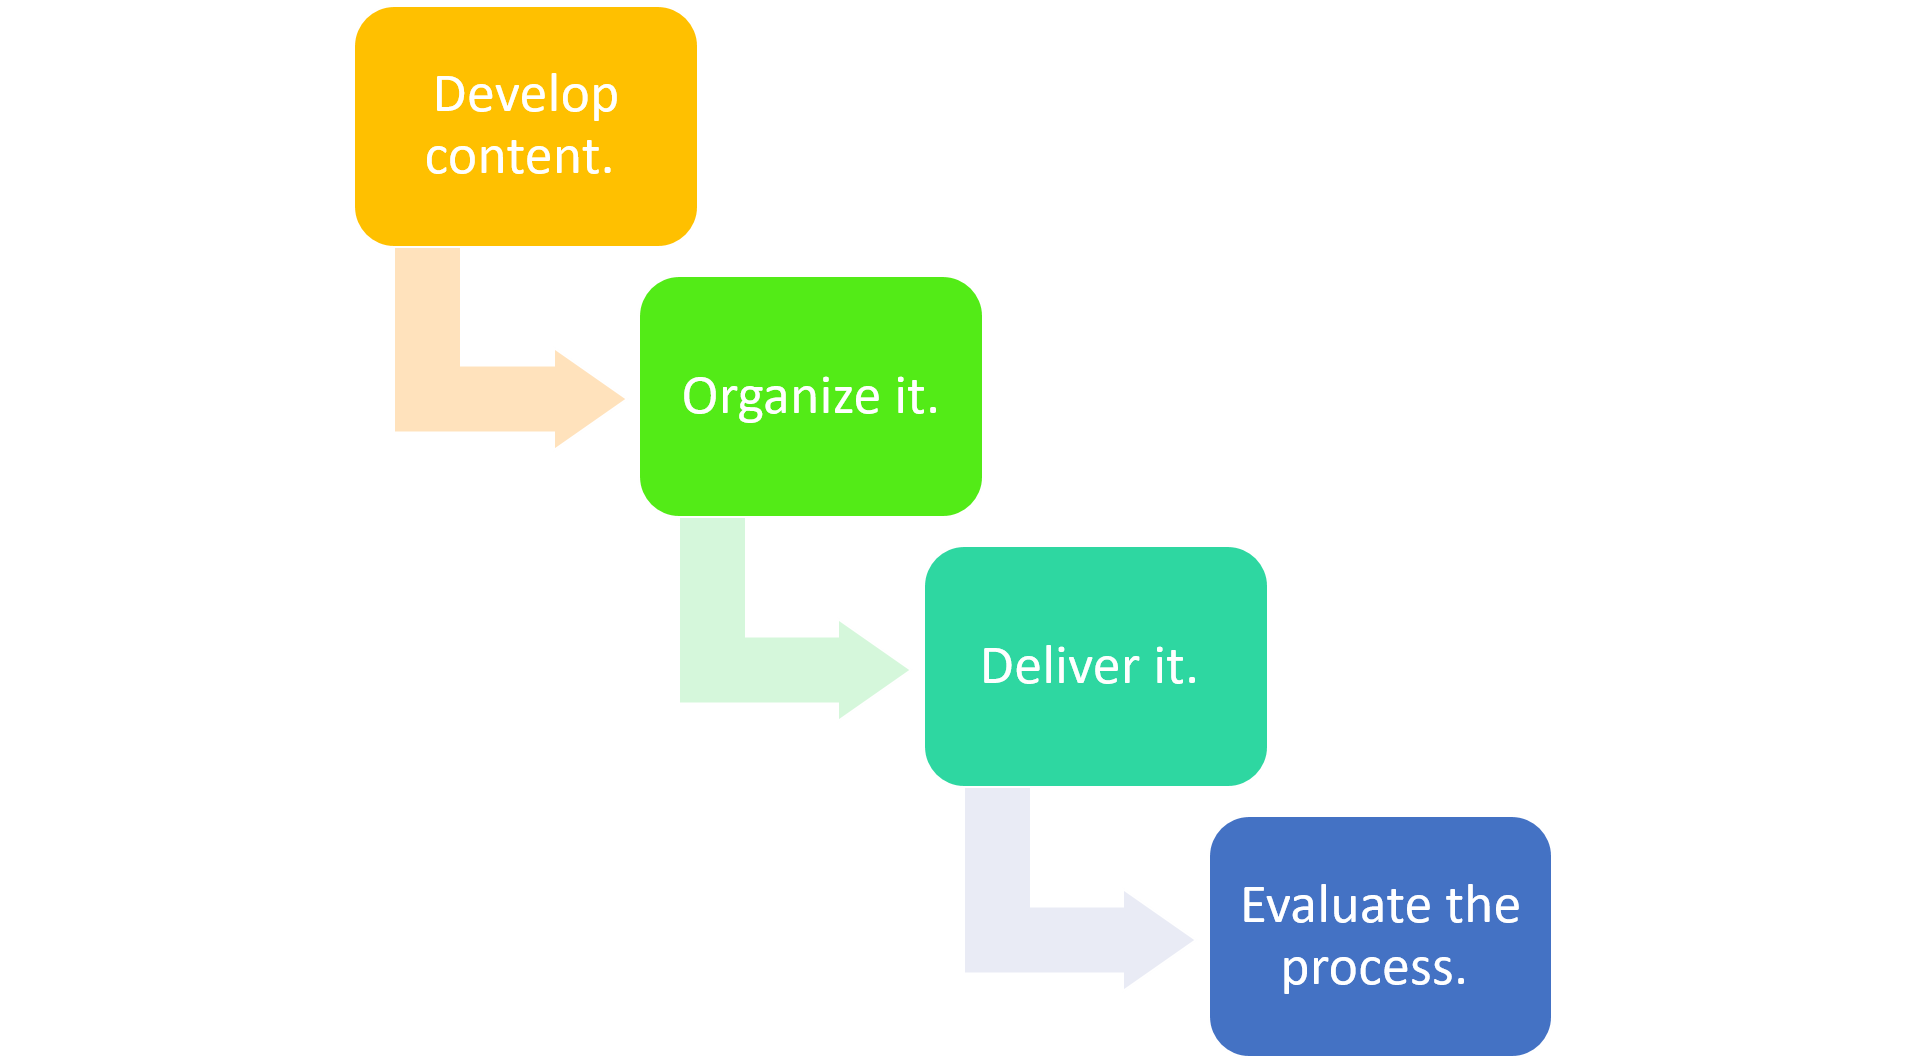 """This figure shows, a four-step staircase leading down from """"develop content"""" then to """"organize it"""", next to """"deliver it"""" and finally to """"evaluate the process""""."""